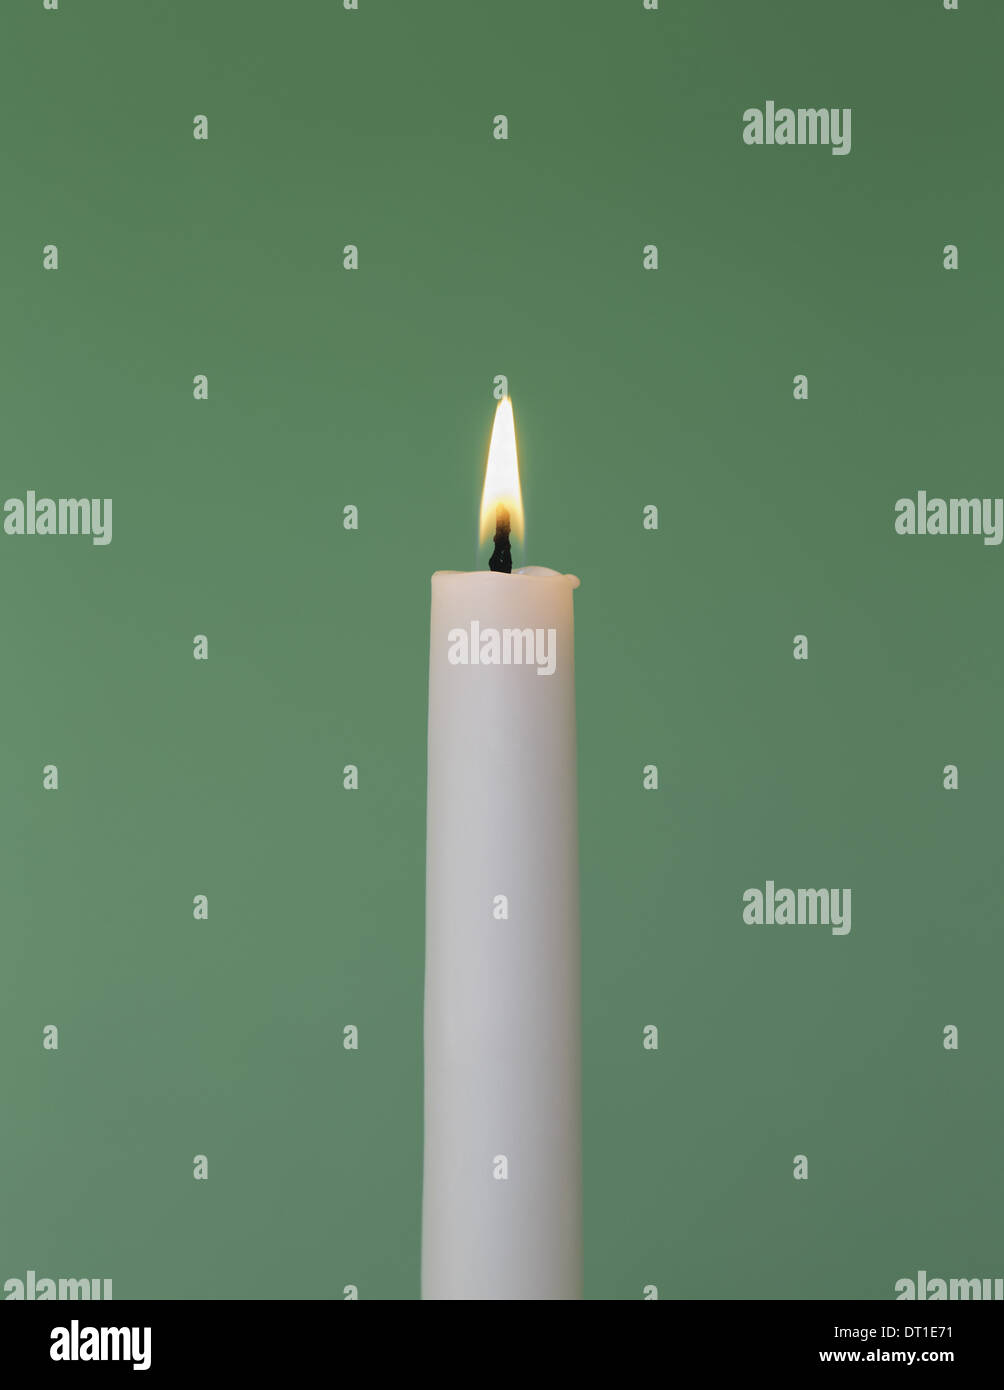 thin white wax candle with small lit flame - Stock Image